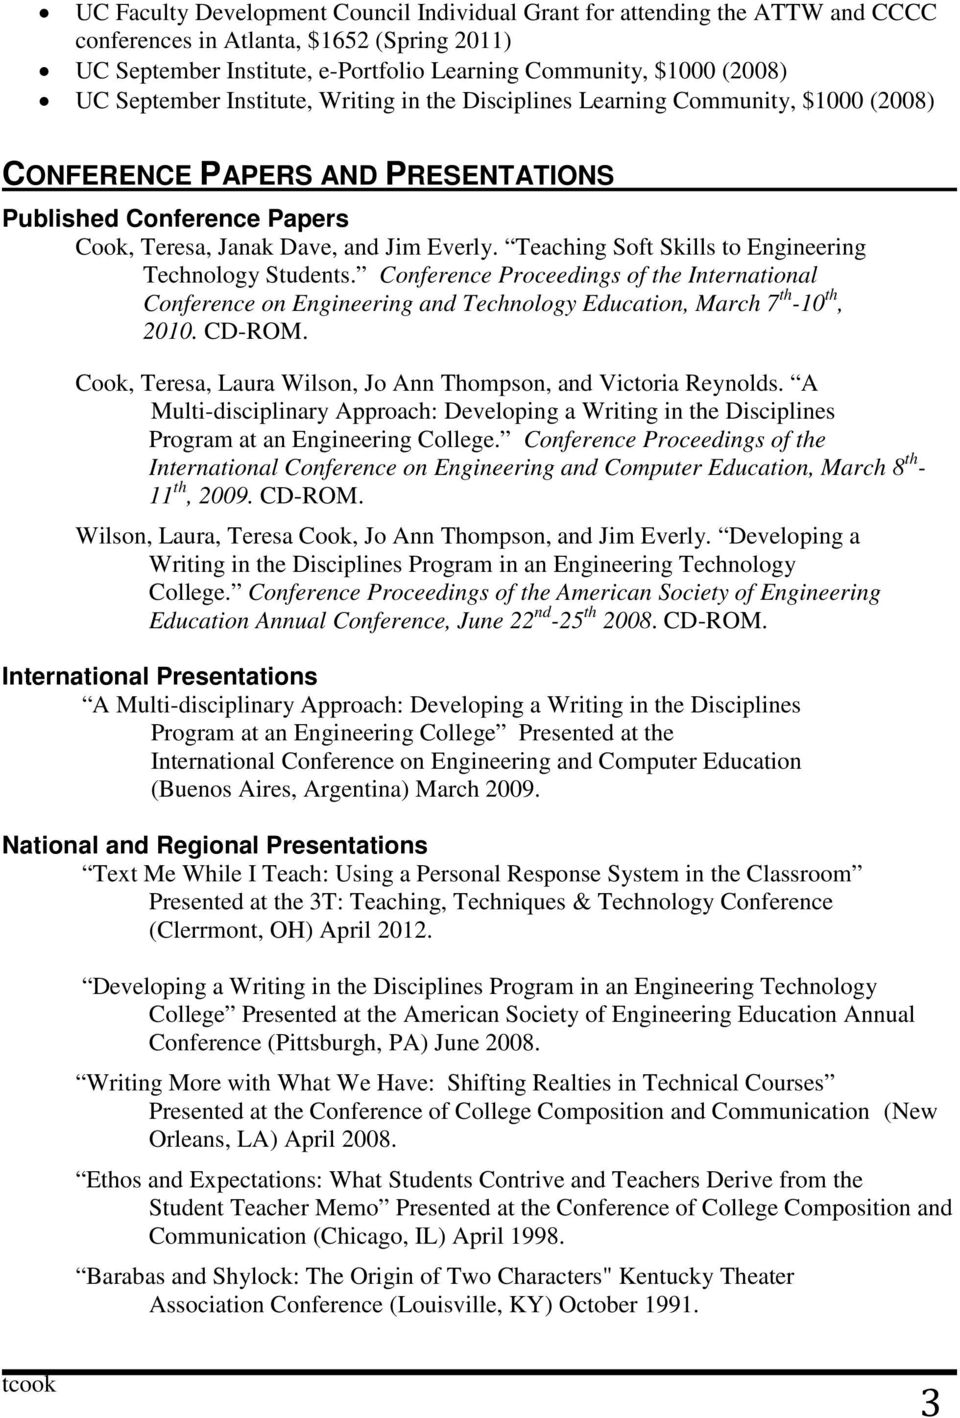 Teaching Soft Skills to Engineering Technology Students. Conference Proceedings of the International Conference on Engineering and Technology Education, March 7 th -10 th, 2010. CD-ROM.